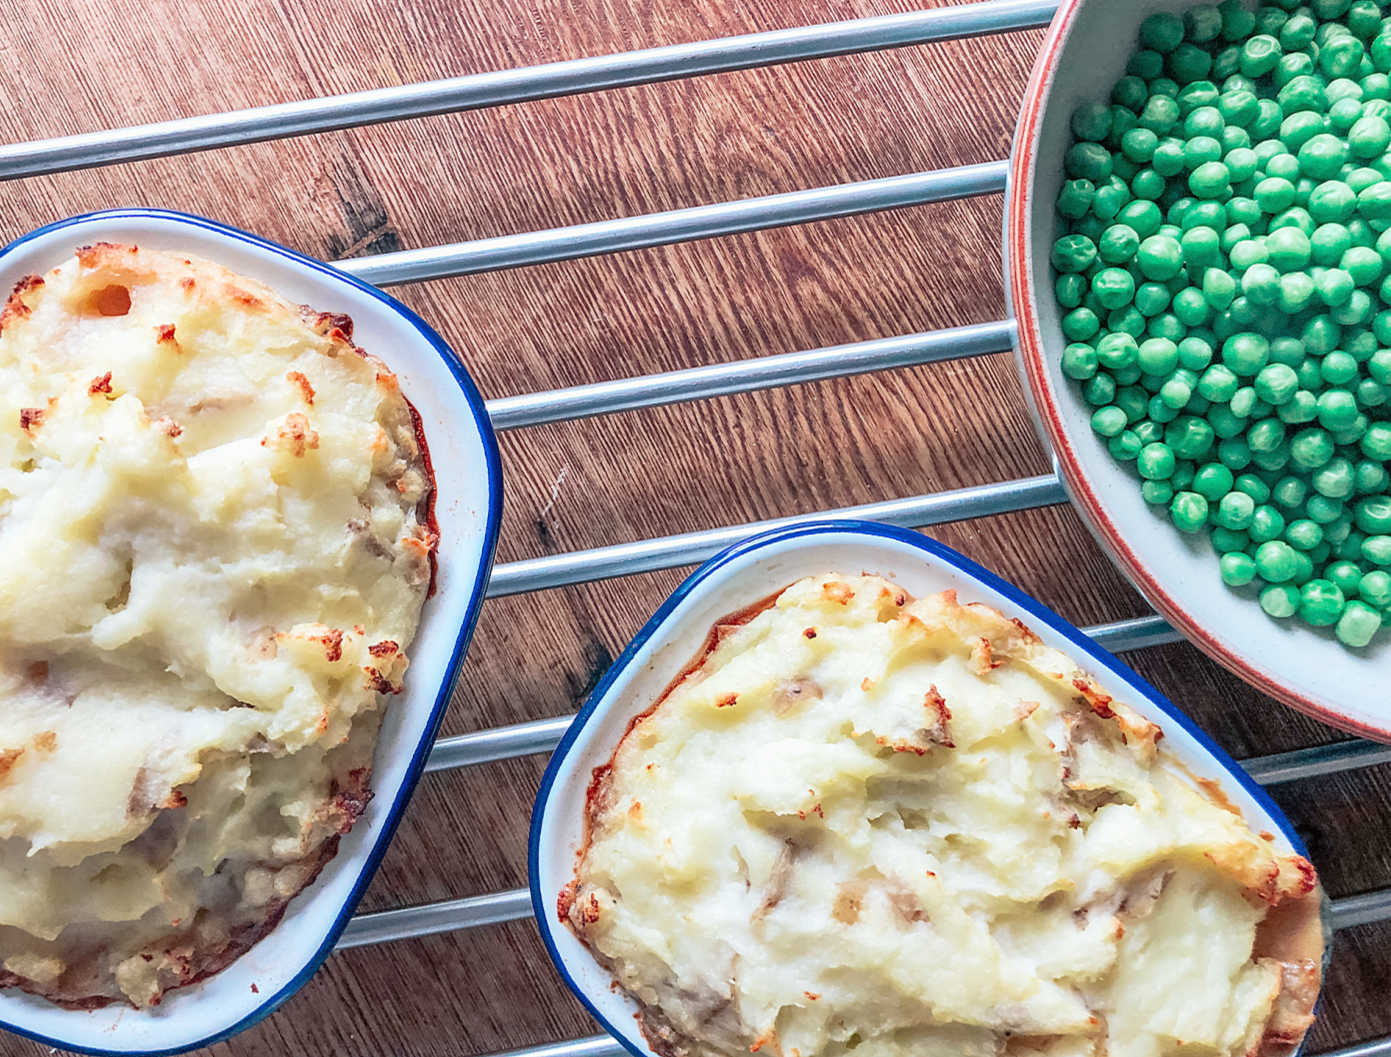 Ultimate Slow Cooker Steak And Ale Pie Recipe With Cheesy Mash